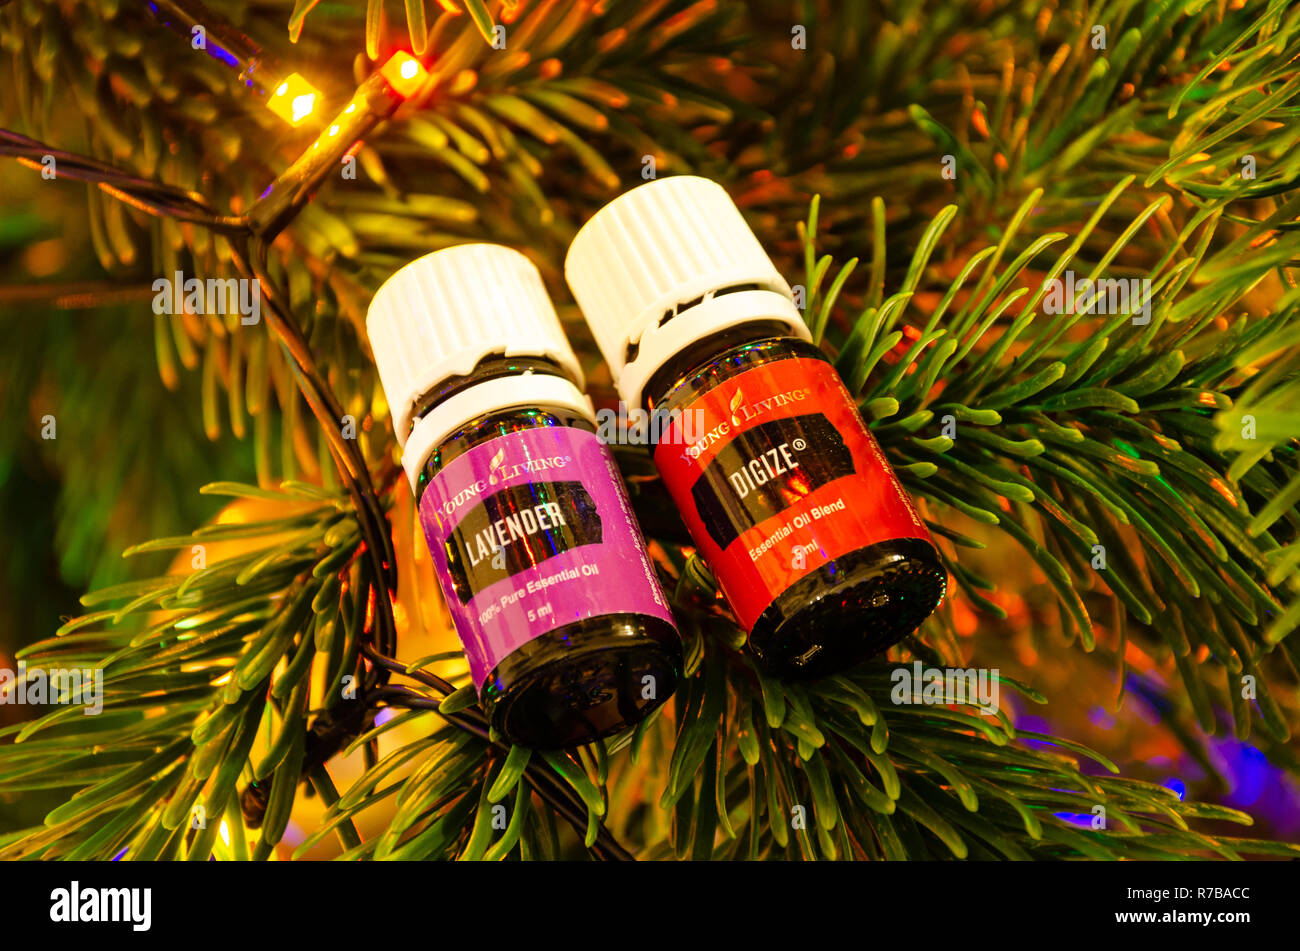 Young Living Christmas Tree.Young Living Essential Oils Pictured Balanced On The Branch